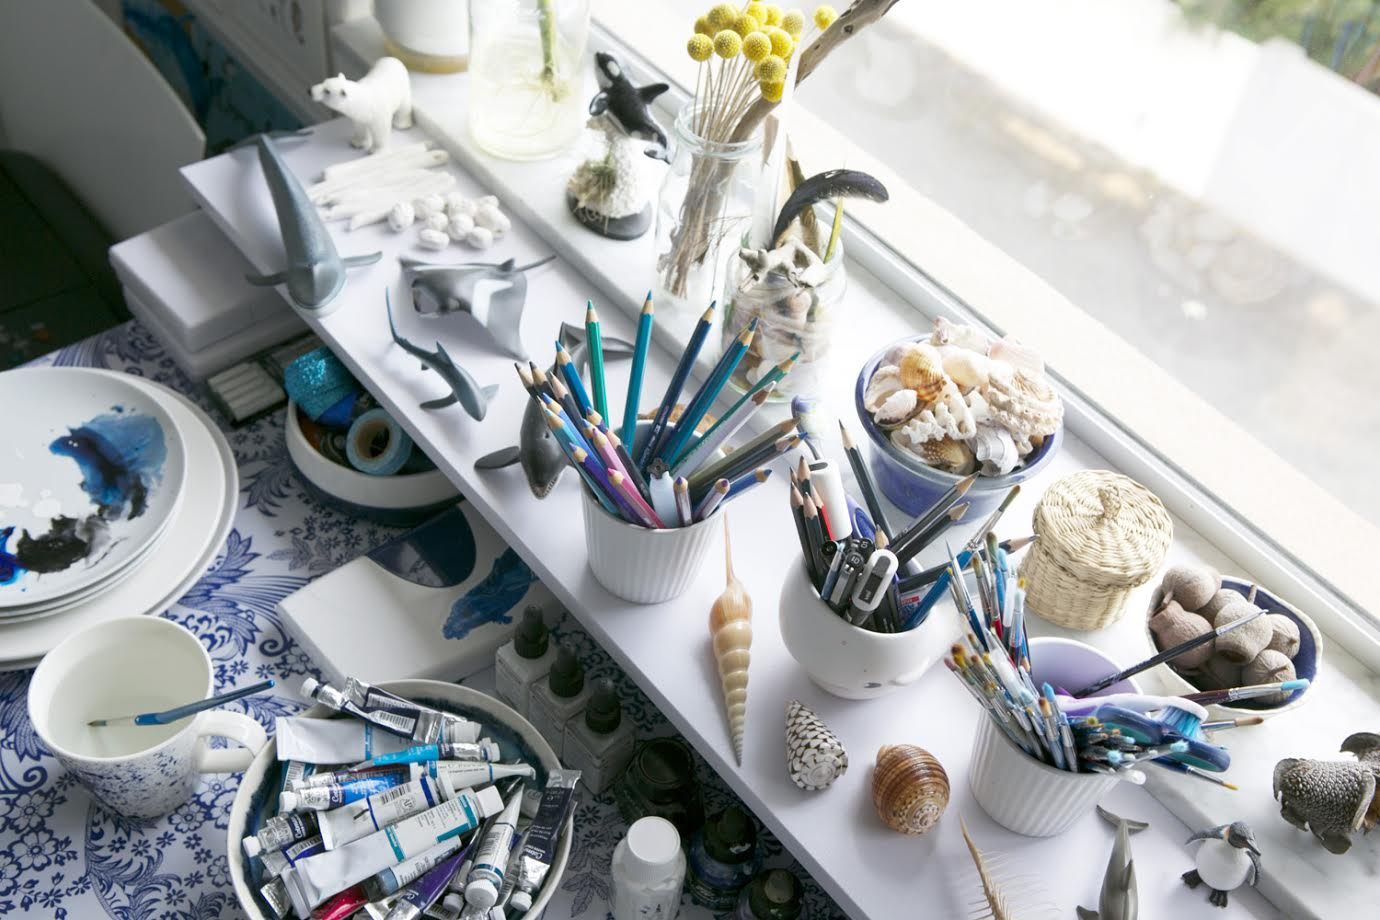 Windowsill and Art Supplies/ A Creative Home..with Artist Michelle Fleur in Perth, Australia // Surelysimple.com